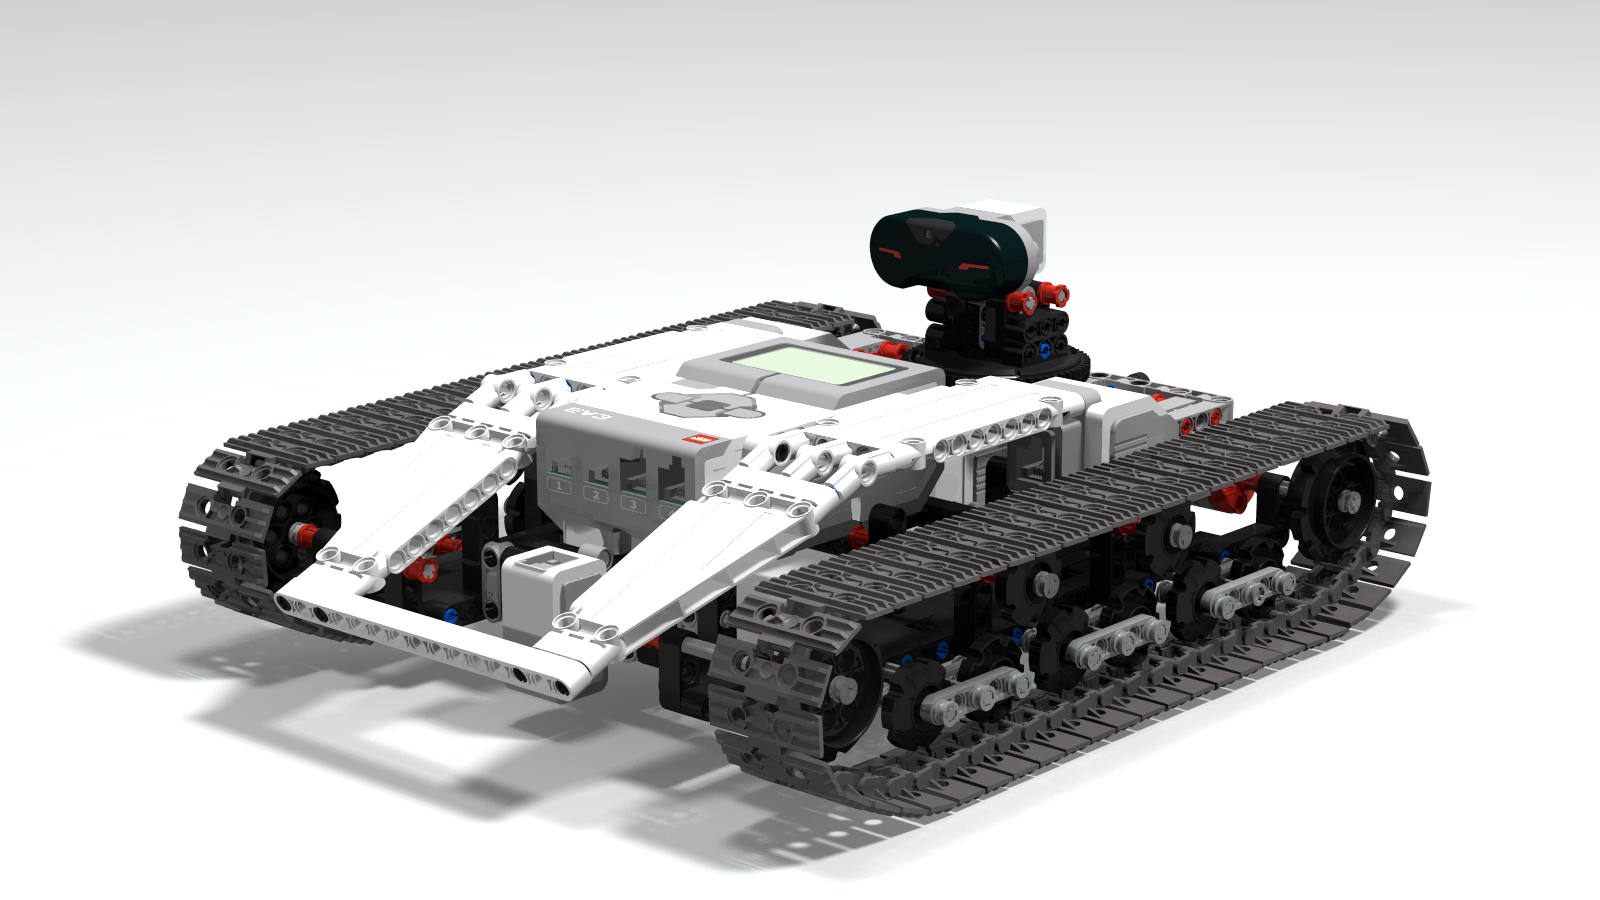 Ev3 Tracked Explor3r, an autonomous tracked vehicle with Ev3Dev